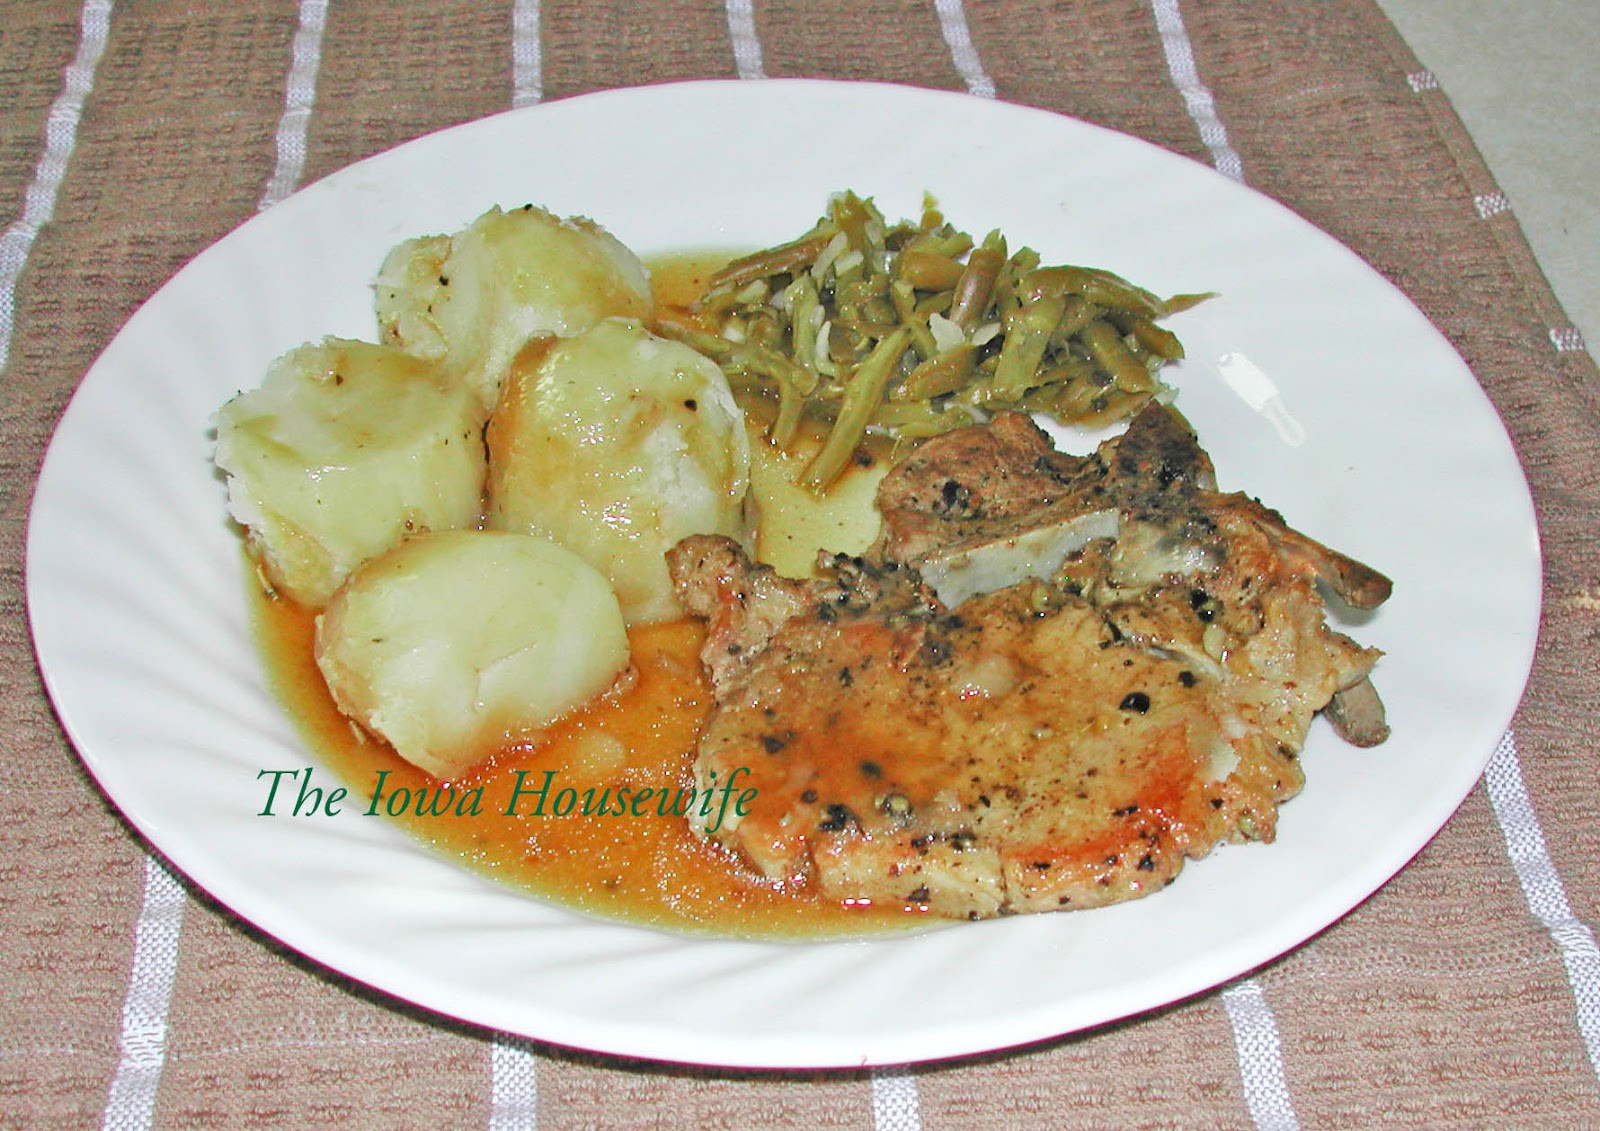 Instant Pot Pork Chops And Potatoes  The Iowa Housewife Instant Pot Pork Chops and potatoes